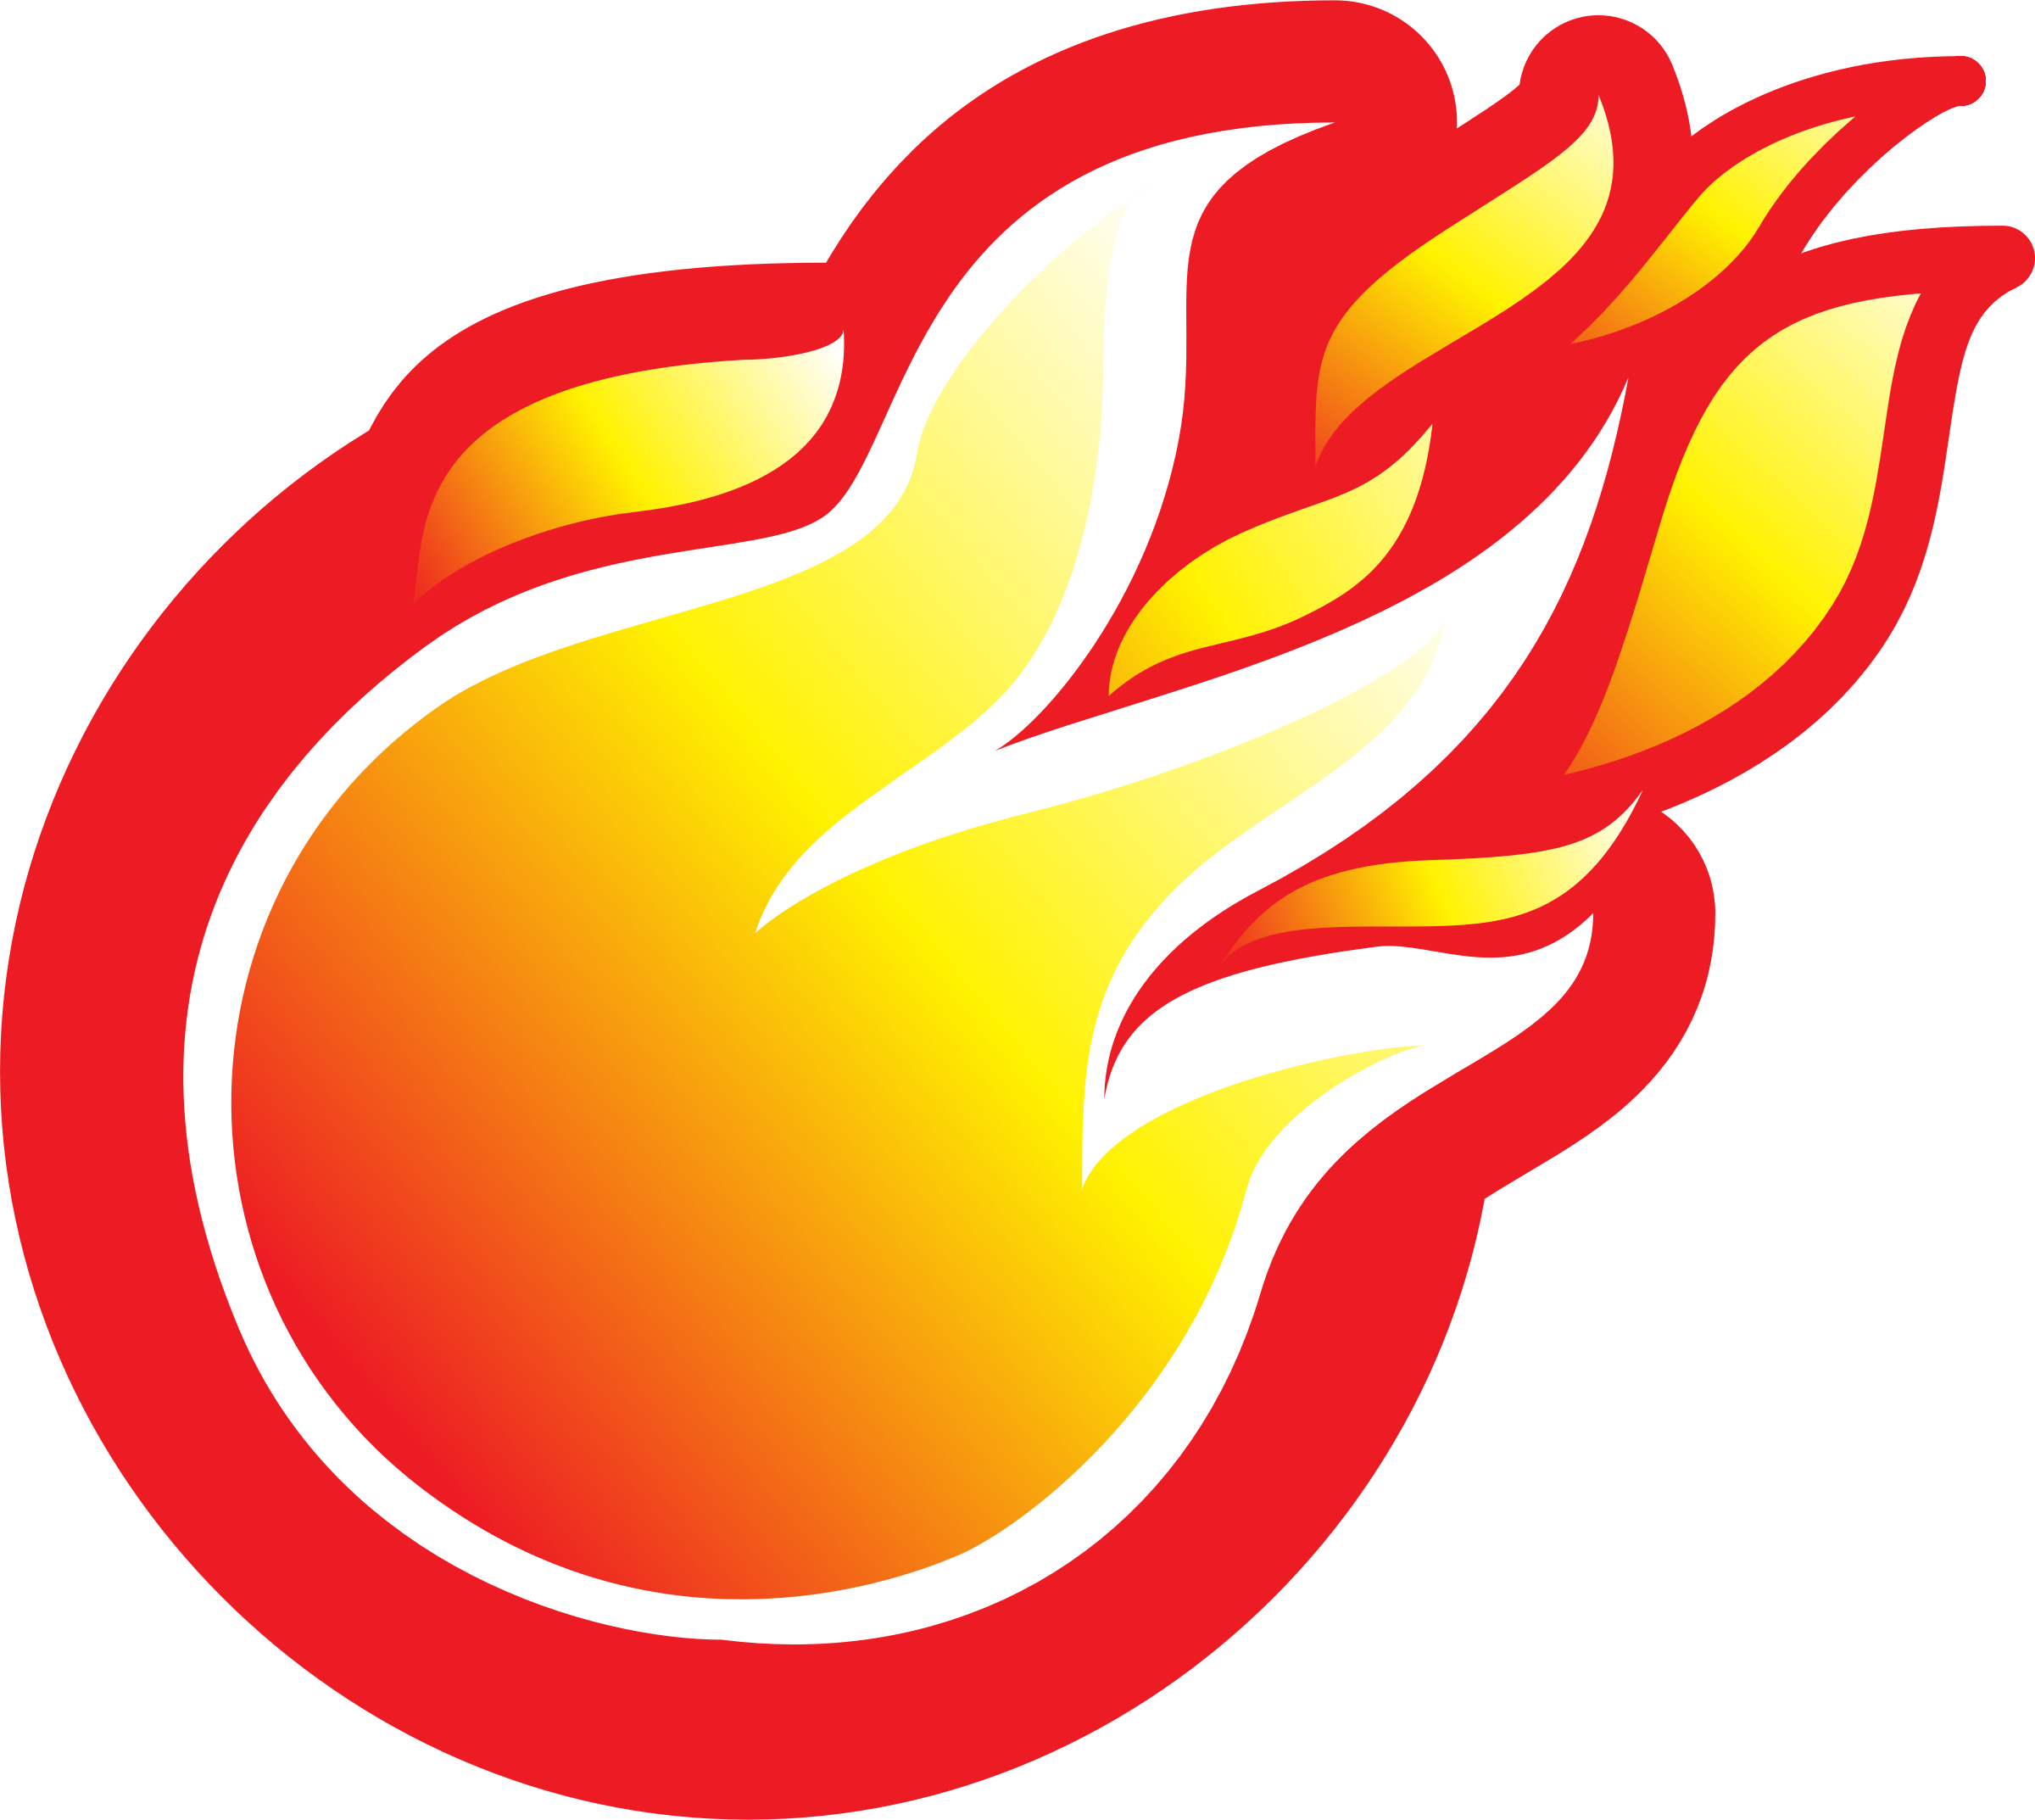 Flame clip art images free clipart 2